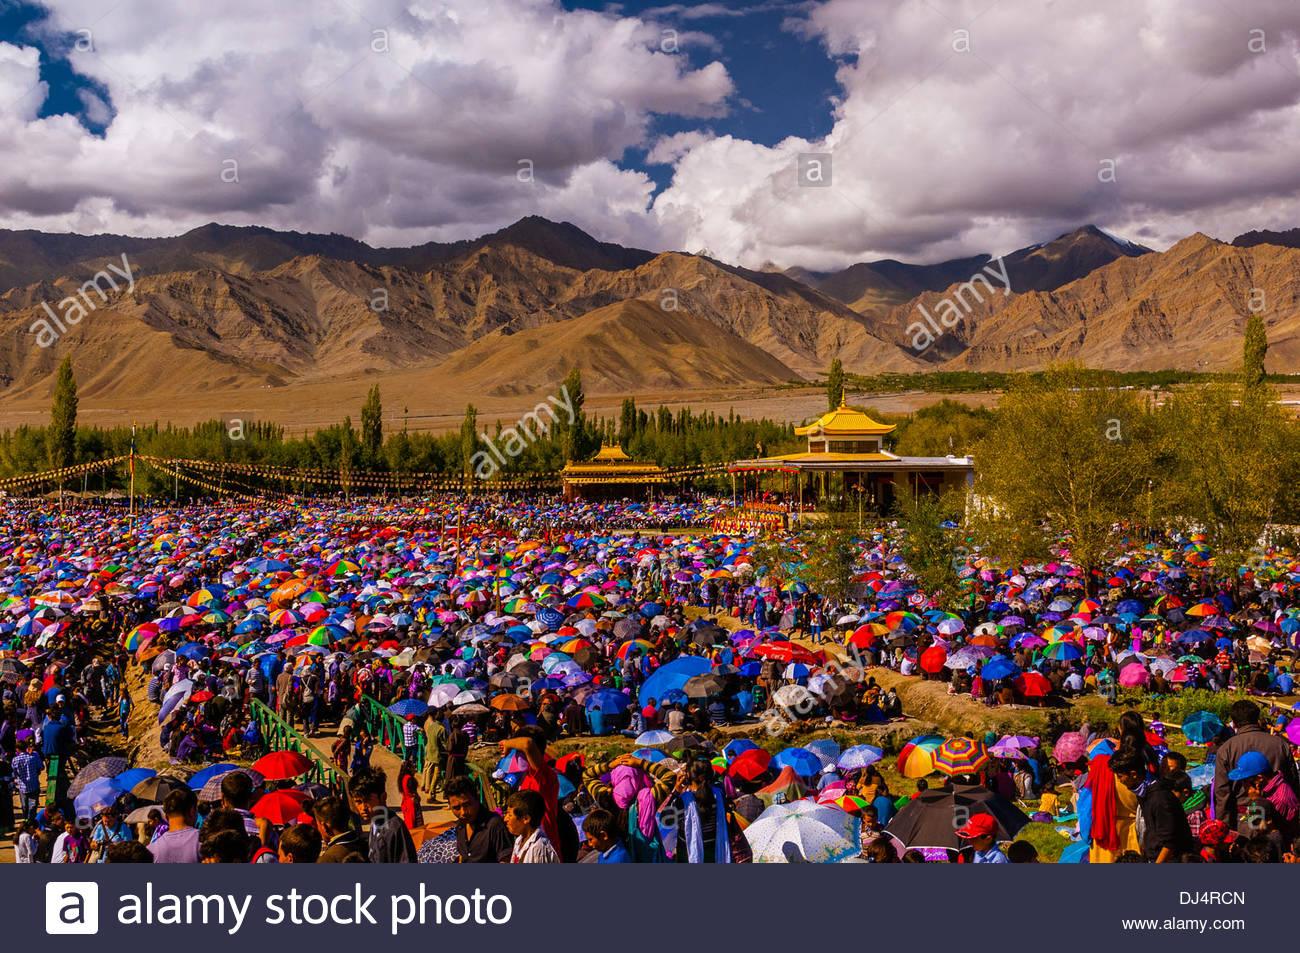 His Holiness the 14th Dalai Lama gives a teaching to a crowd of 175,000 people at Choglamsar, Ladakh, Jammu and Kashmir State, India. - Stock Image